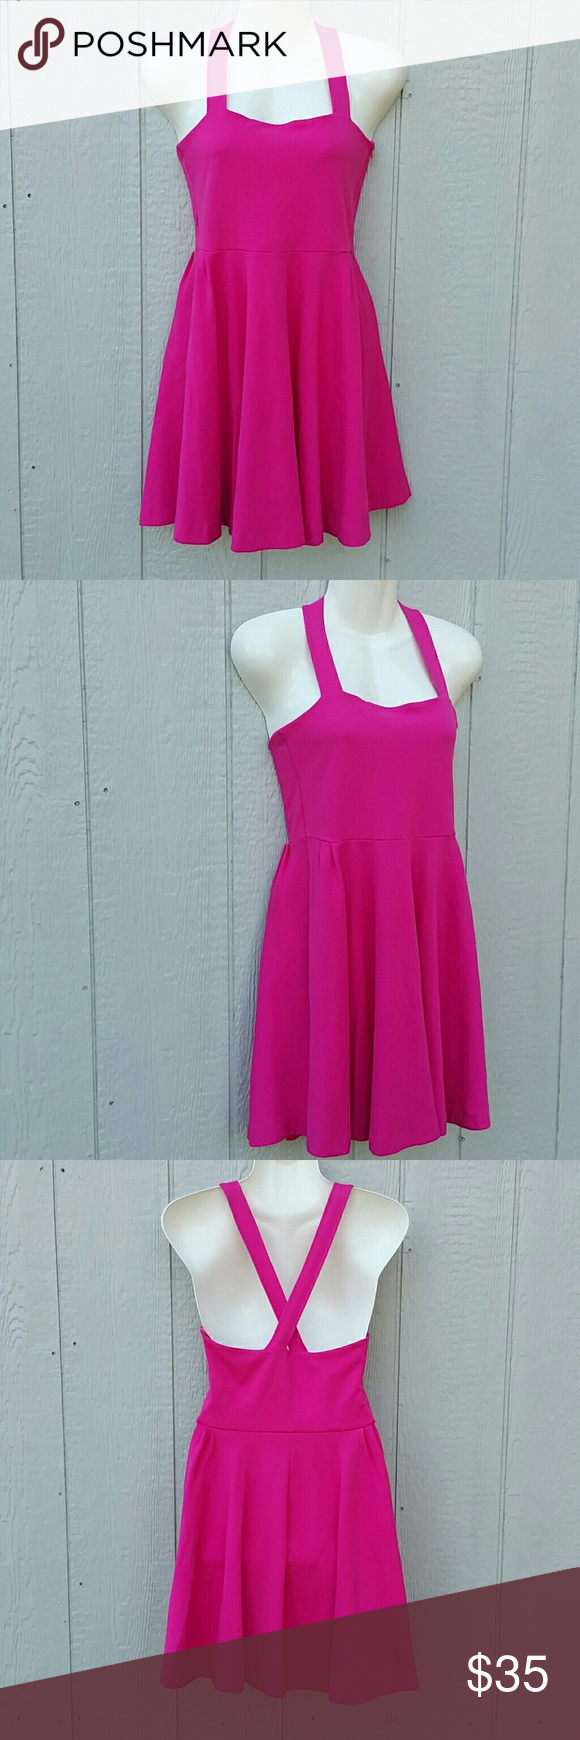 Zara Evening Collection Hot Pink Party Dress   Pink party dresses ...